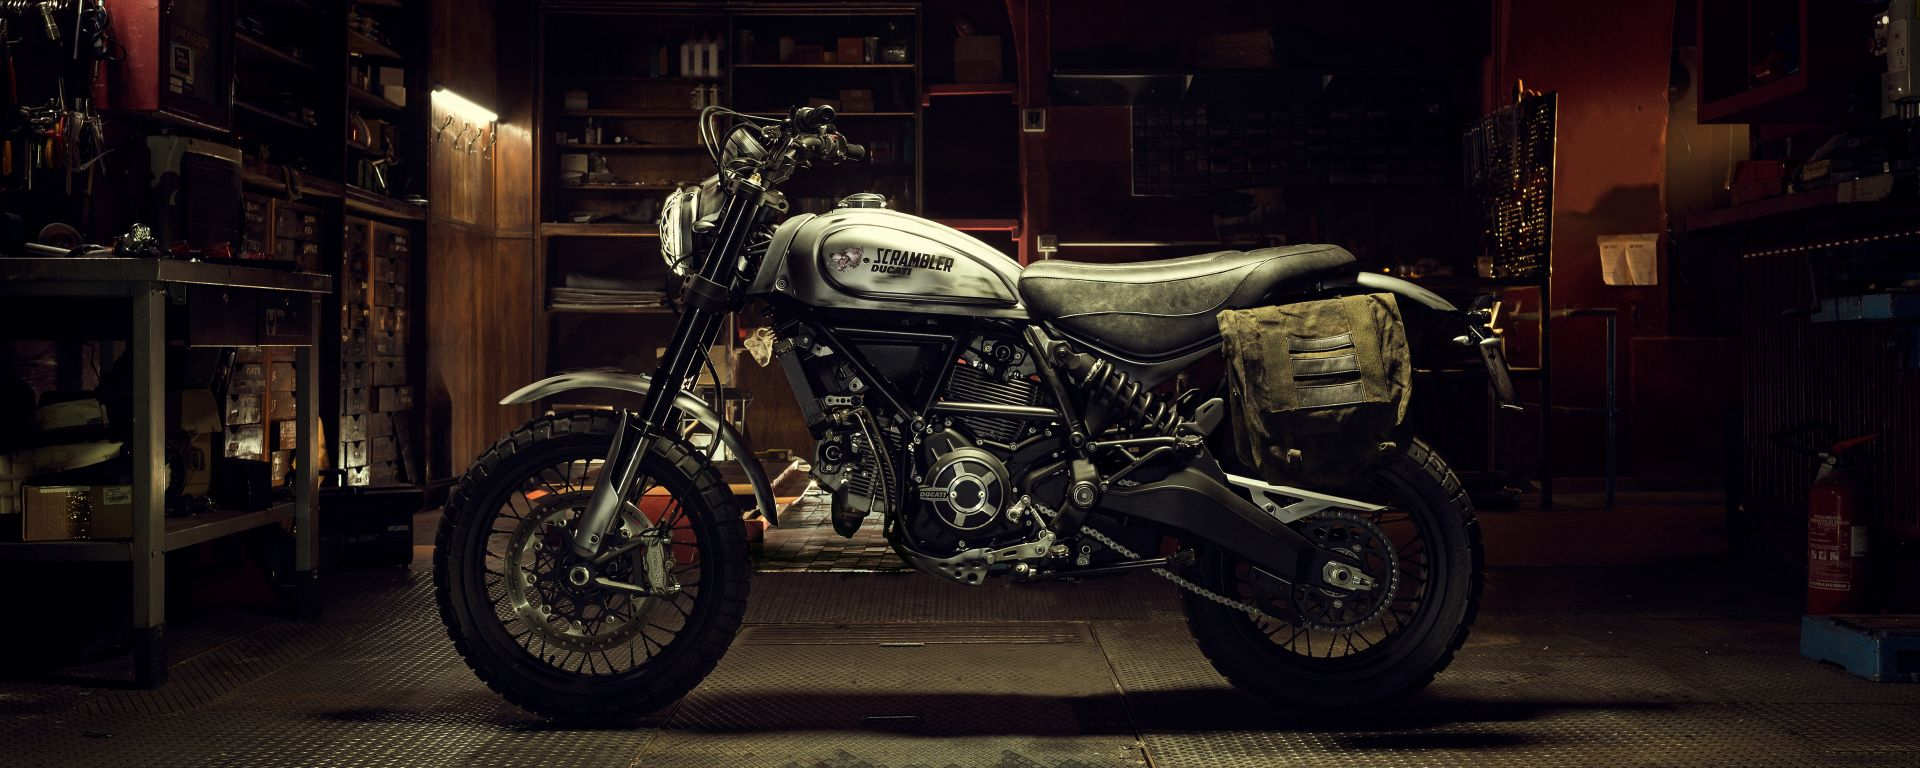 Ducati Scrambler Desert Sled: la sepecial in stile Days Gone